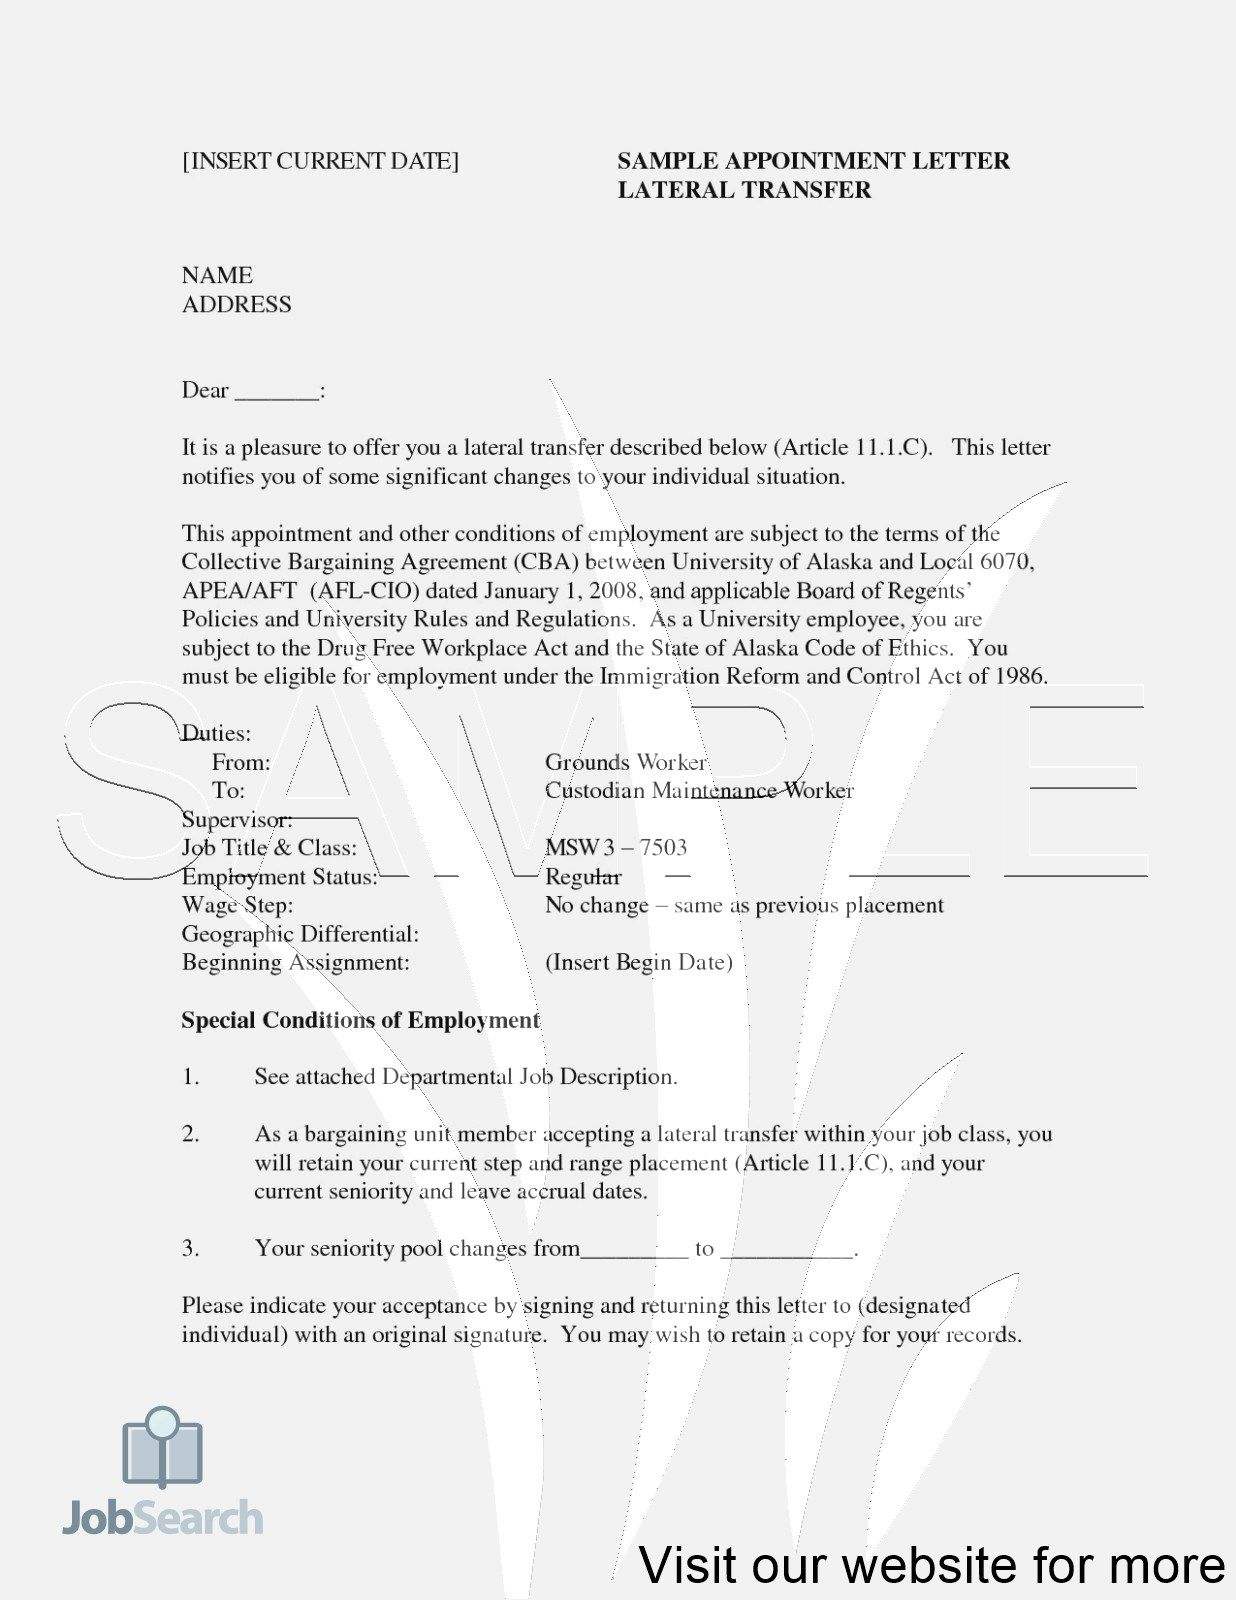 resume template google docs in 2020 Resume template